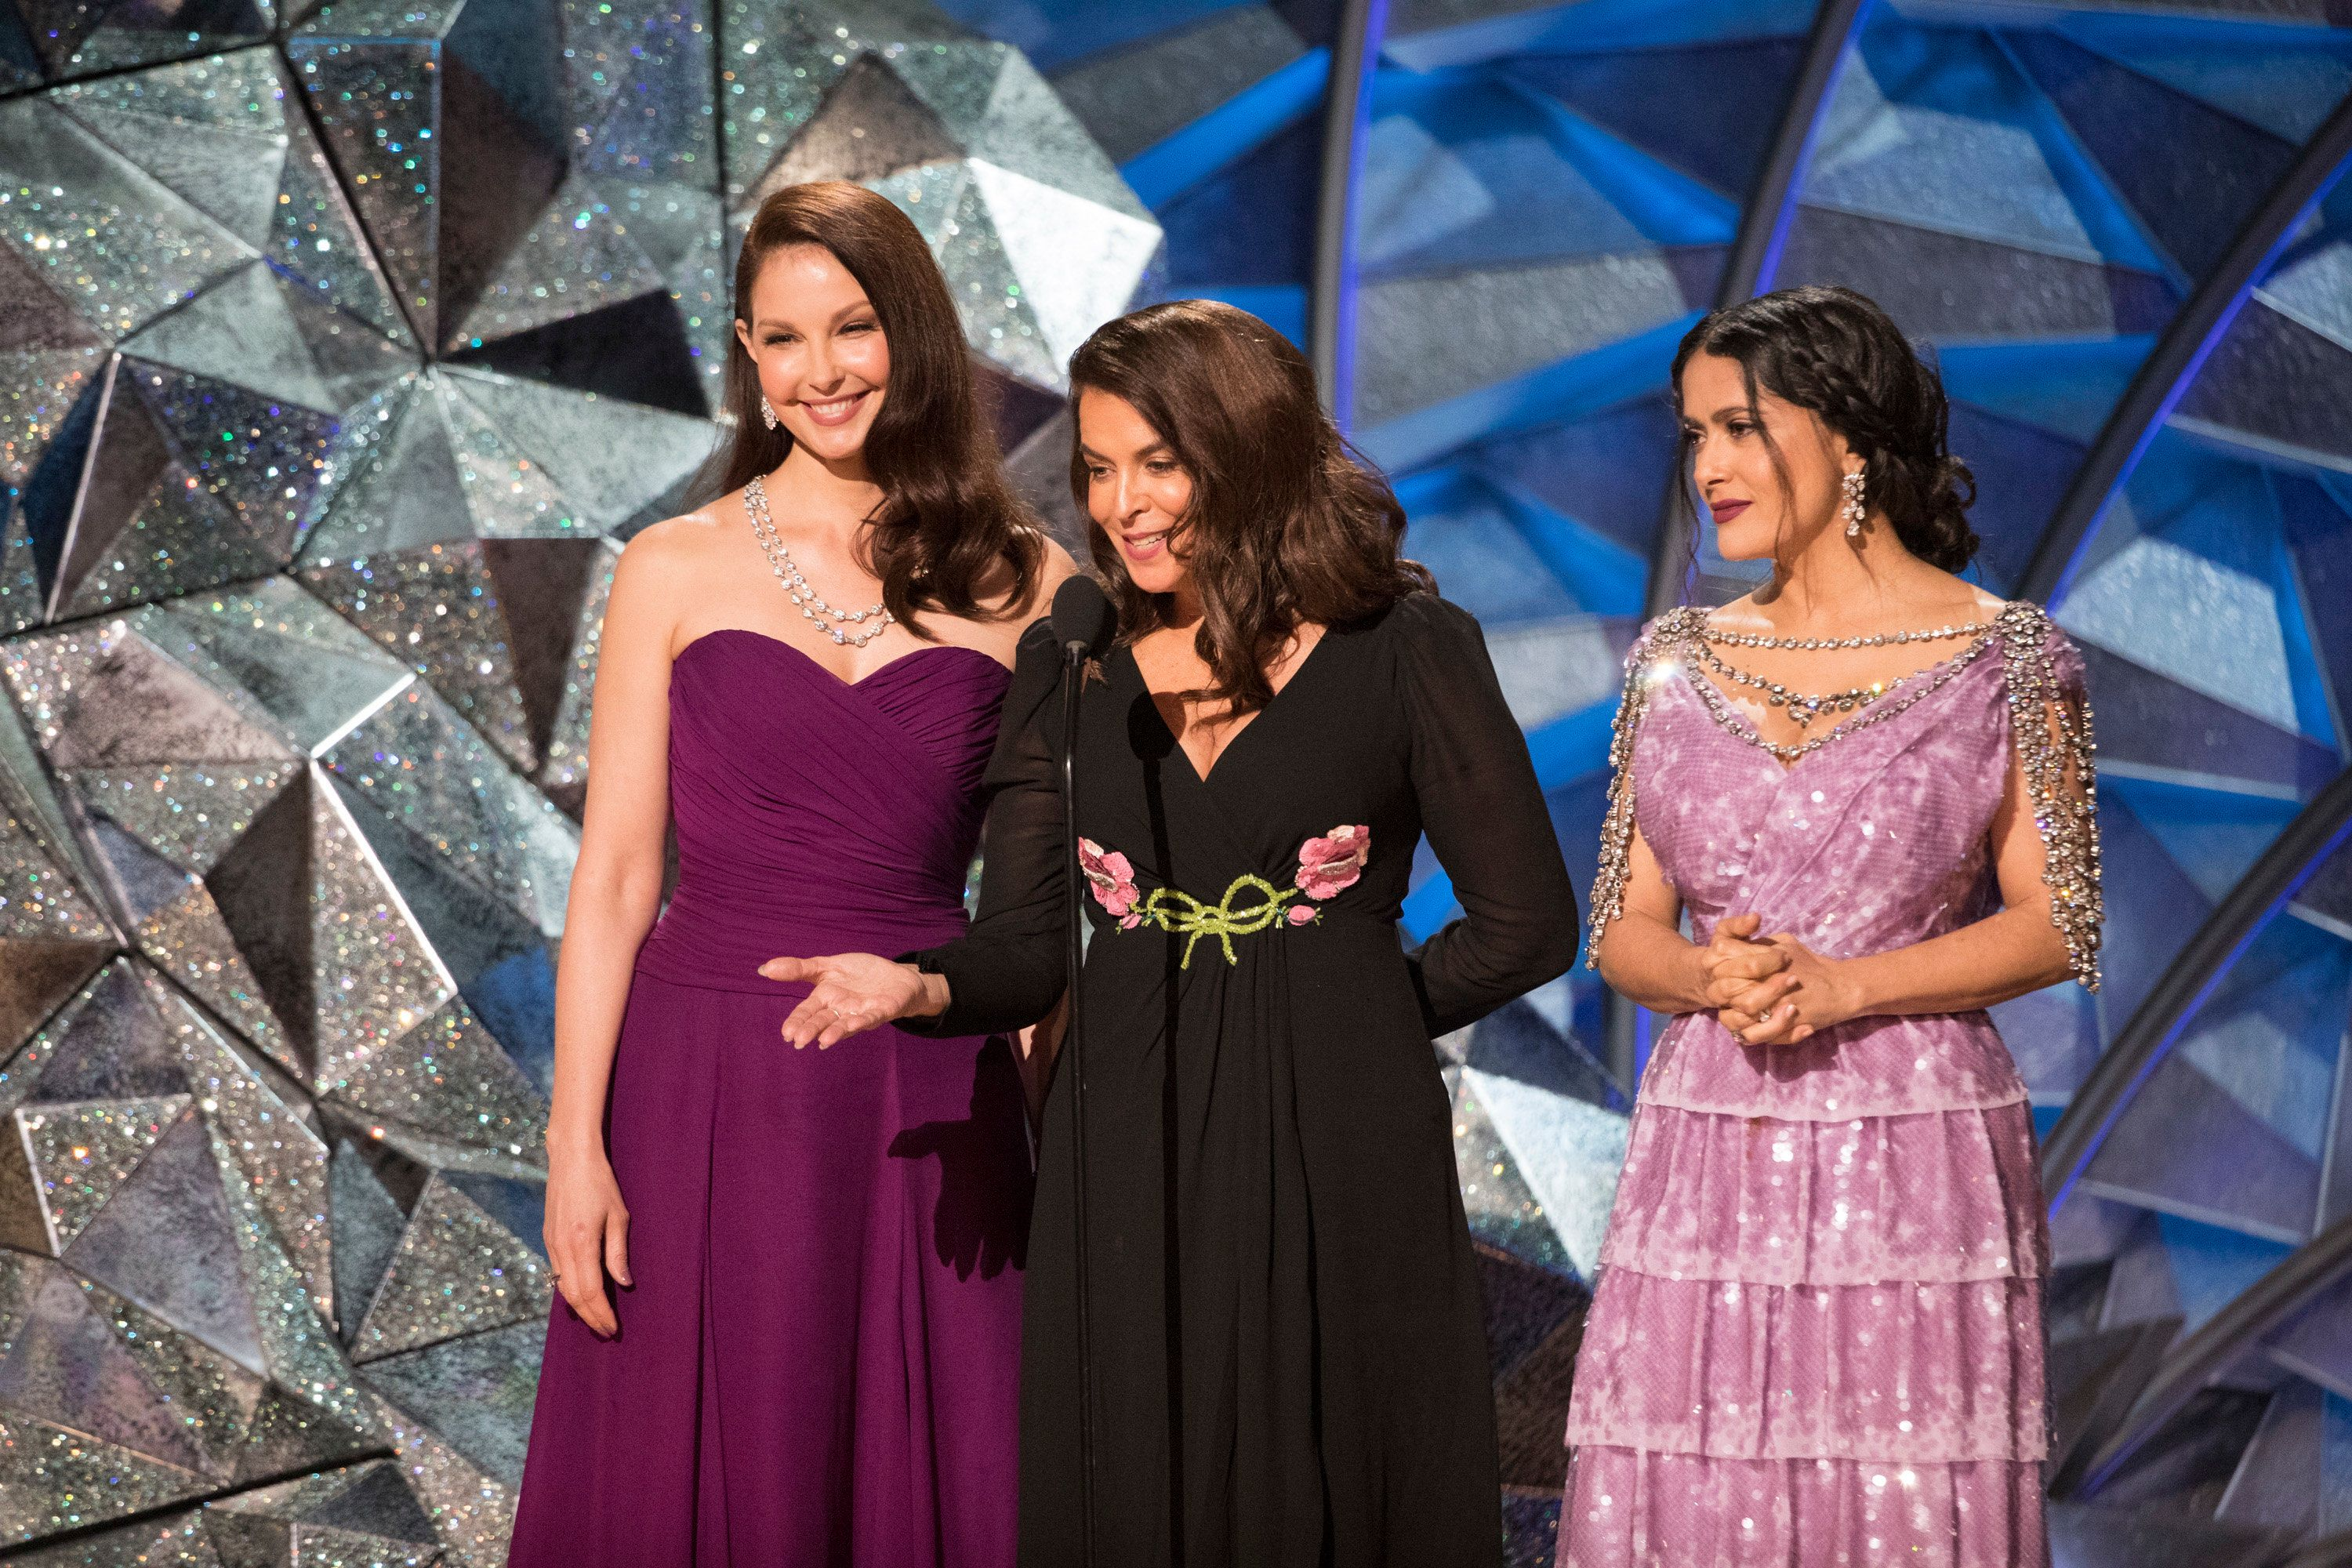 THE OSCARS(r) - The 90th Oscars(r)  broadcasts live on Oscar(r) SUNDAY, MARCH 4, 2018, at the Dolby Theatre® at Hollywood & Highland Center® in Hollywood, on the ABC Television Network. (Craig Sjodin via Getty Images) ASHLEY JUDD, ANNABELLA SCIORRA, SALMA HAYEK